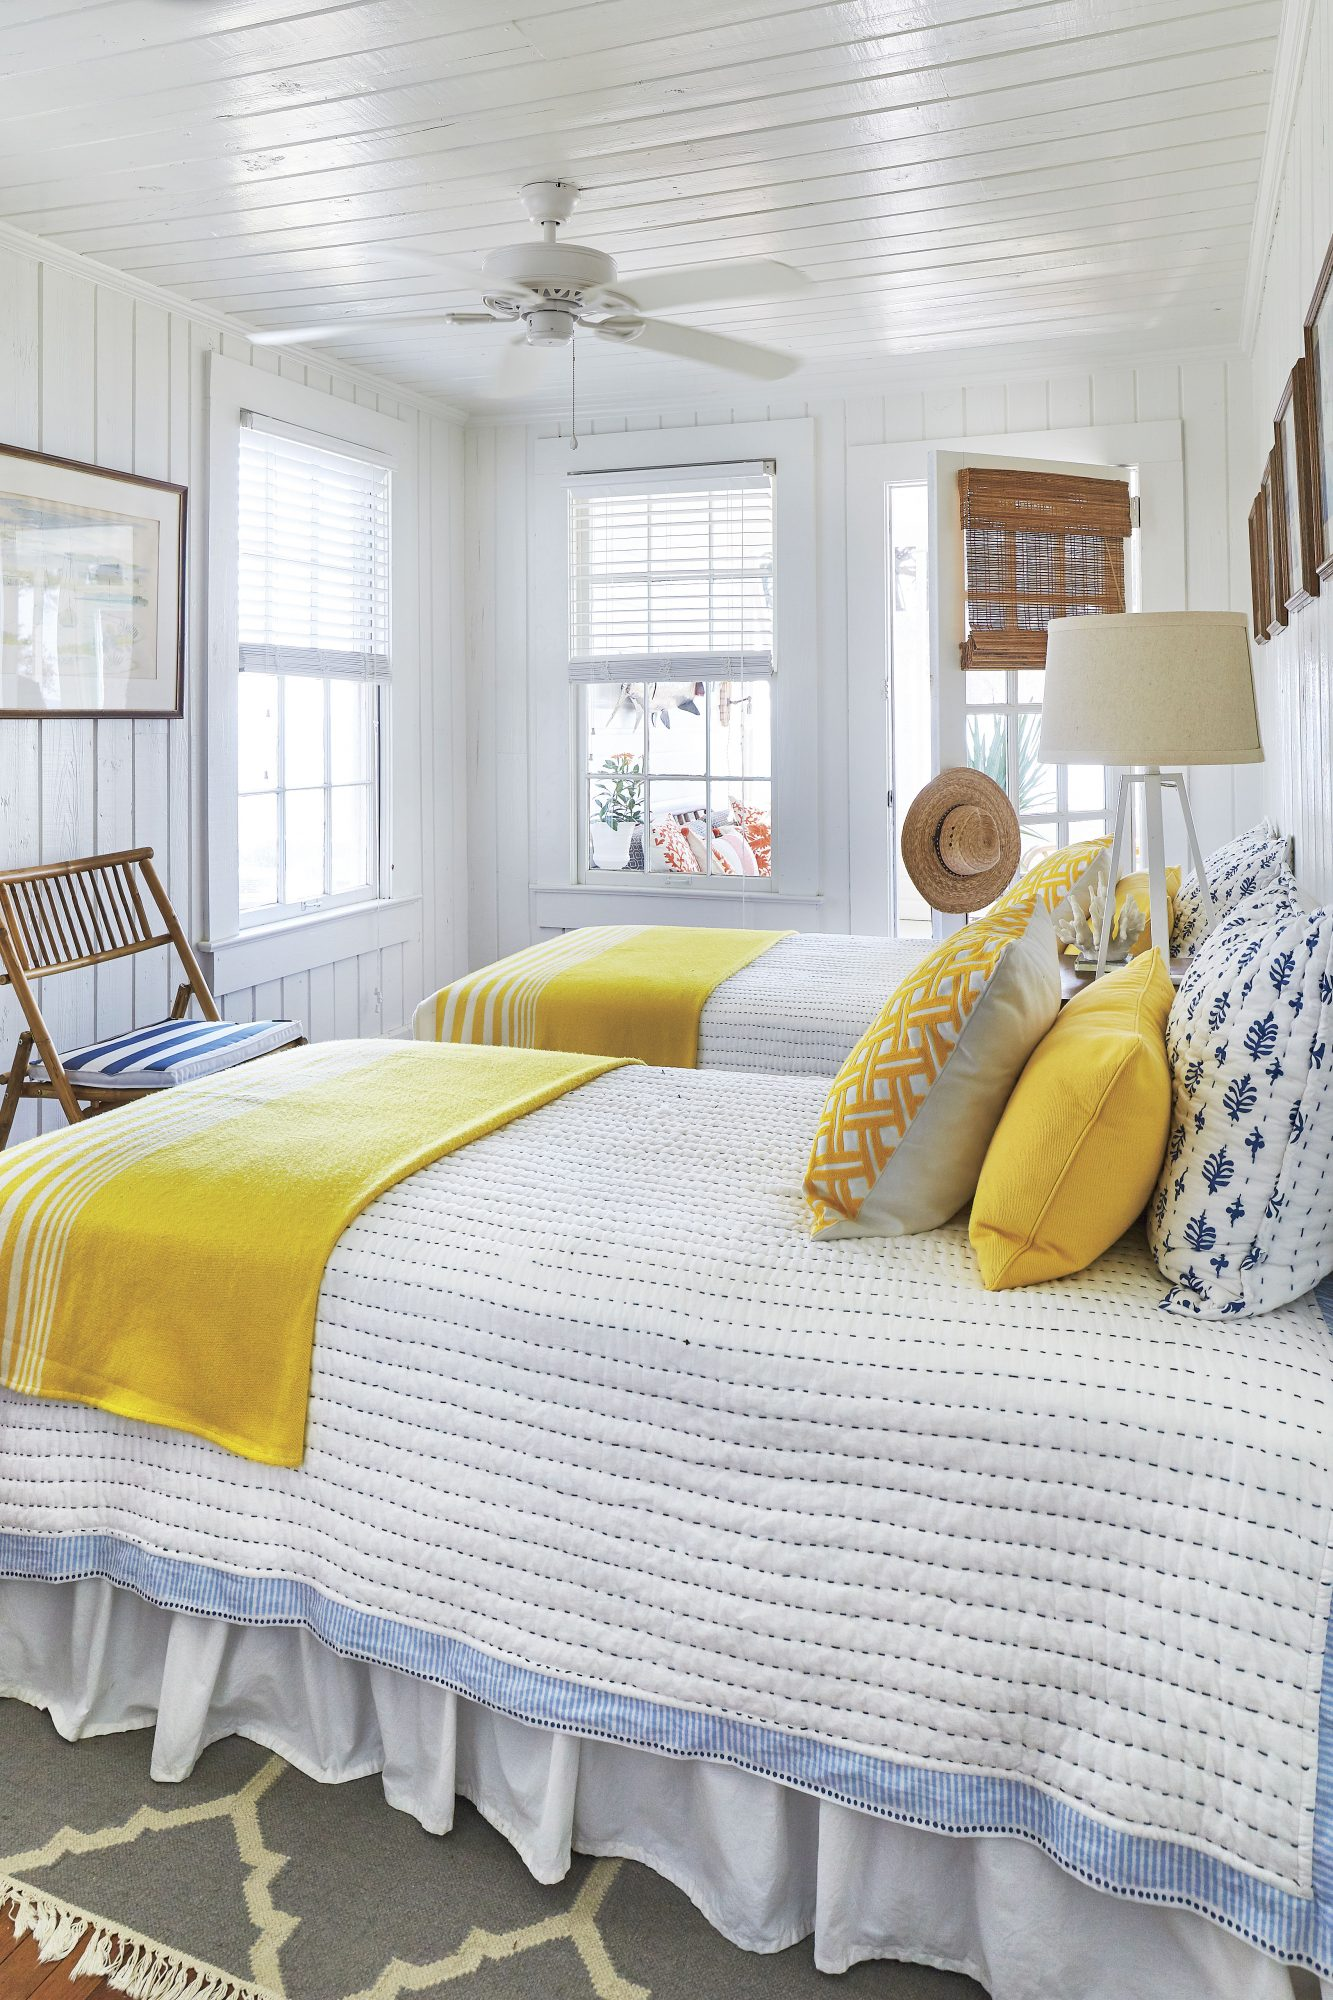 St. Teresa, FL Beach House with Yellow and White Twin Bedroom for Guests